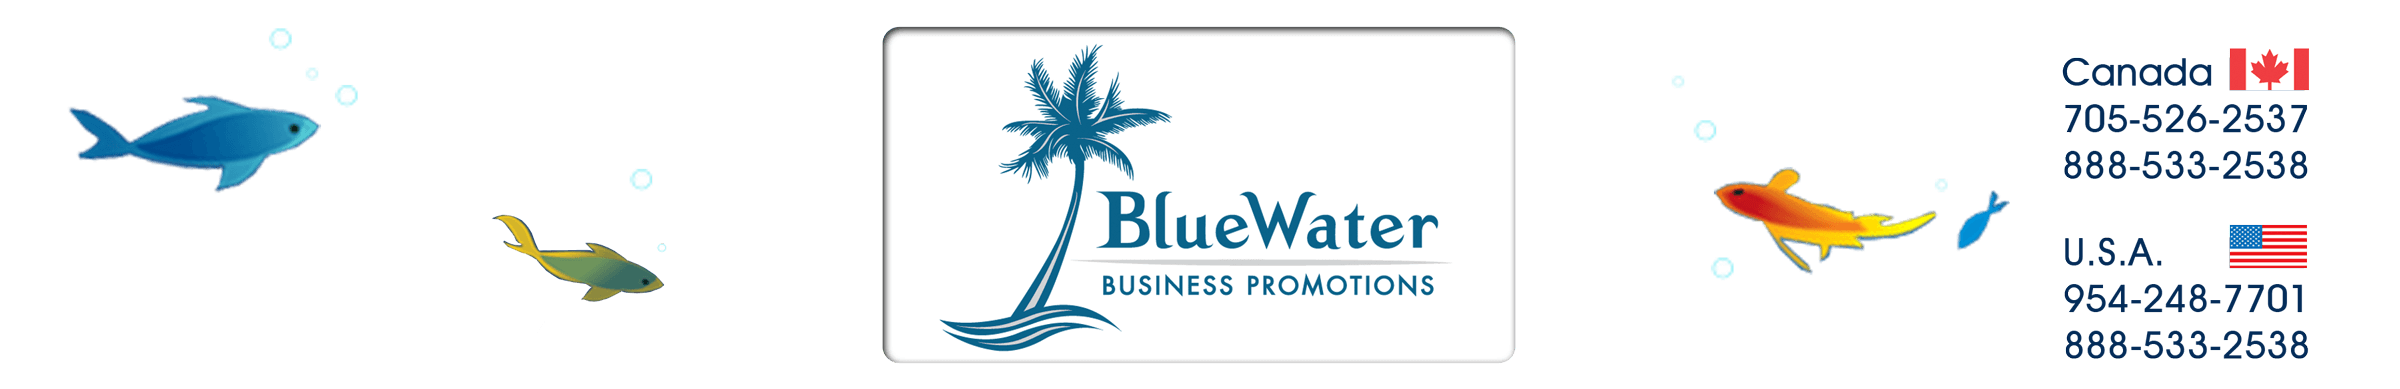 BlueWater Business Promotions